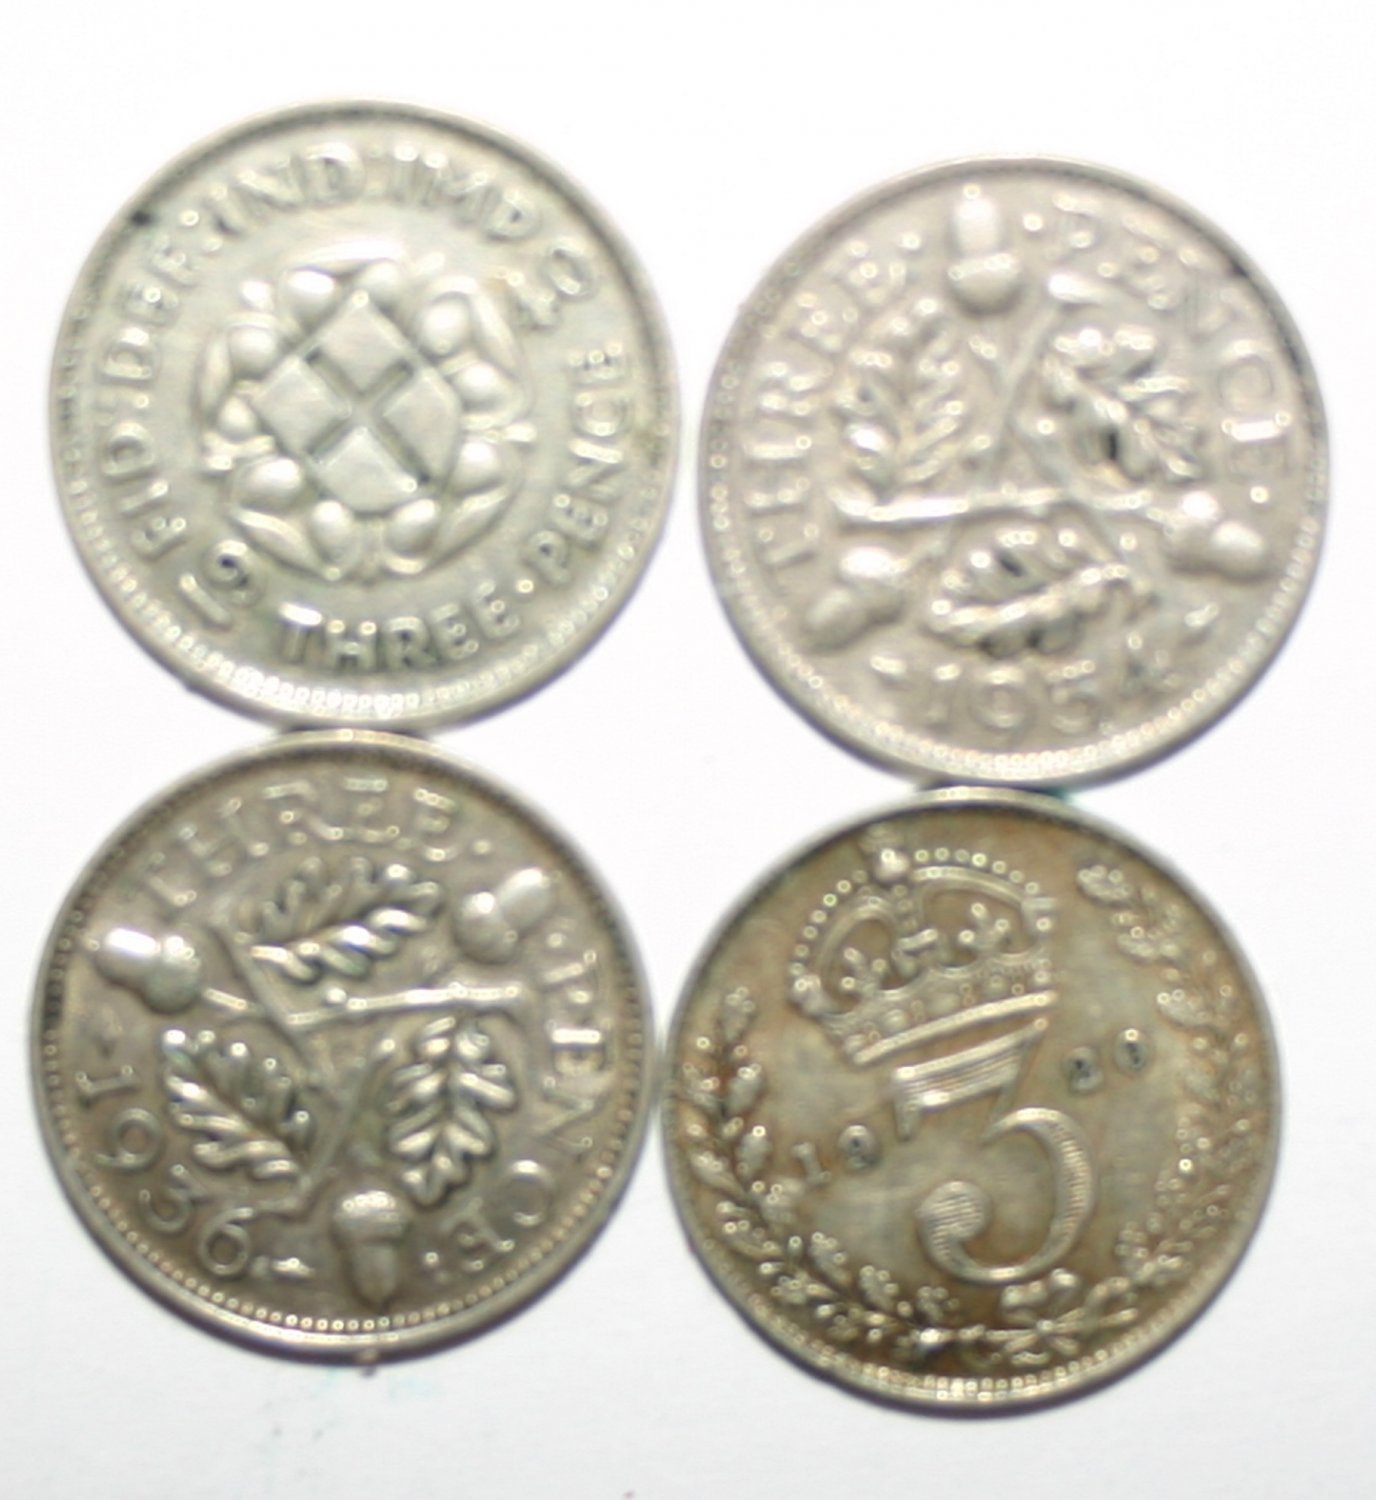 Collection Of Silver Sixpence Coins Dated 1920, 1936, 1940 and 1934